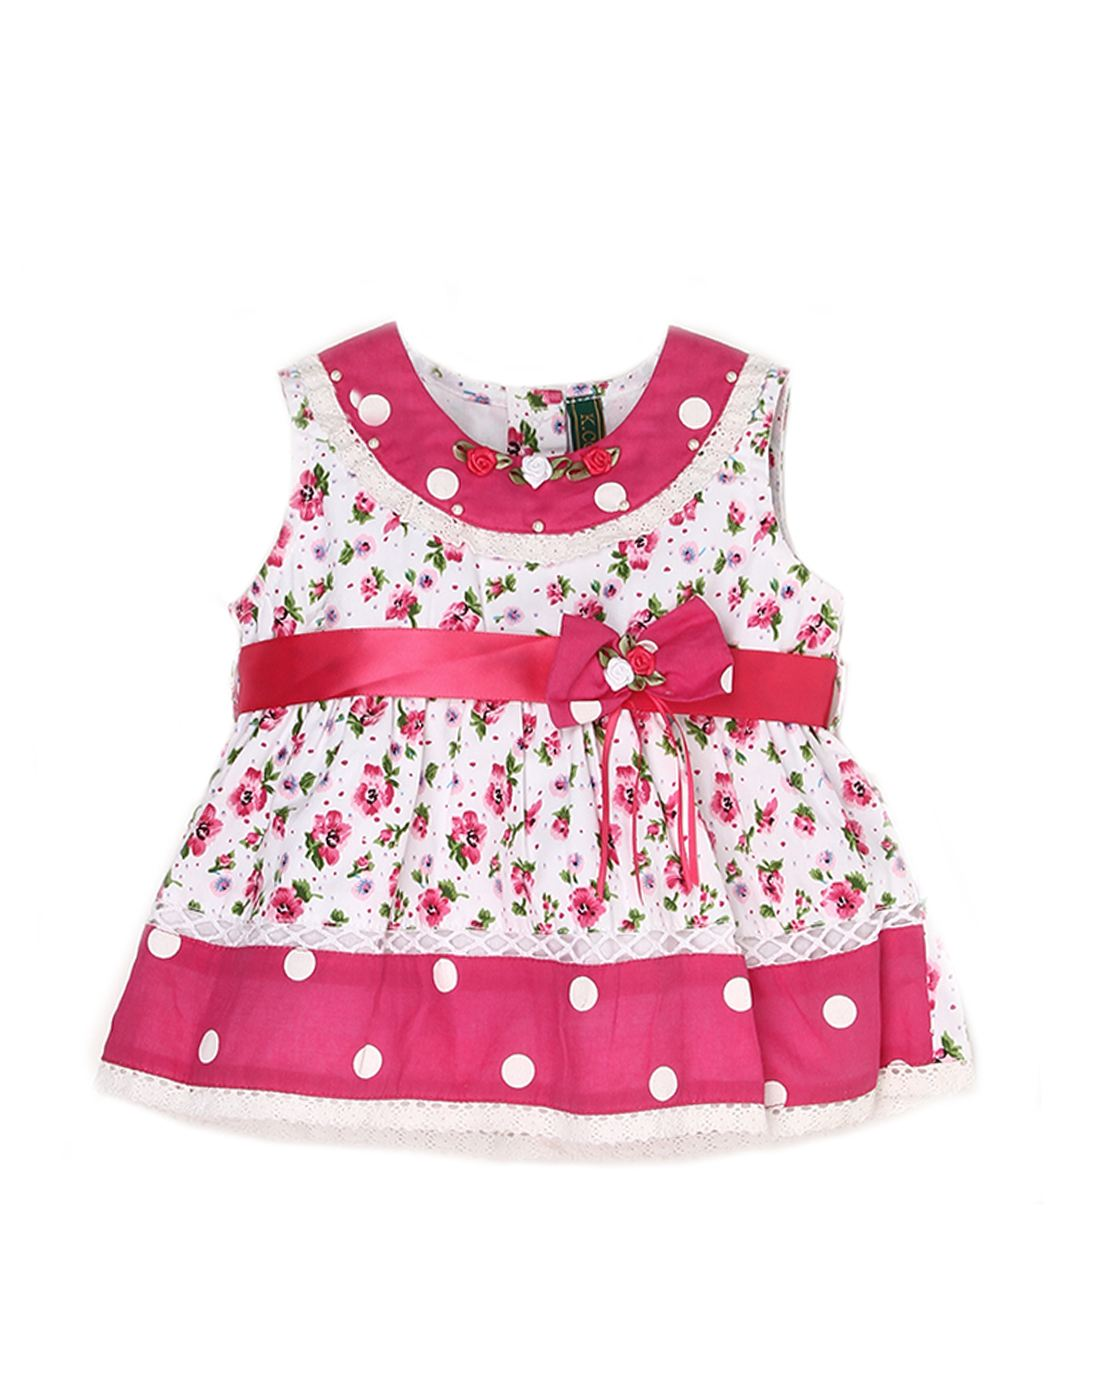 K.C.O 89 Infant Girls Casual Printed Sleeveless Frock